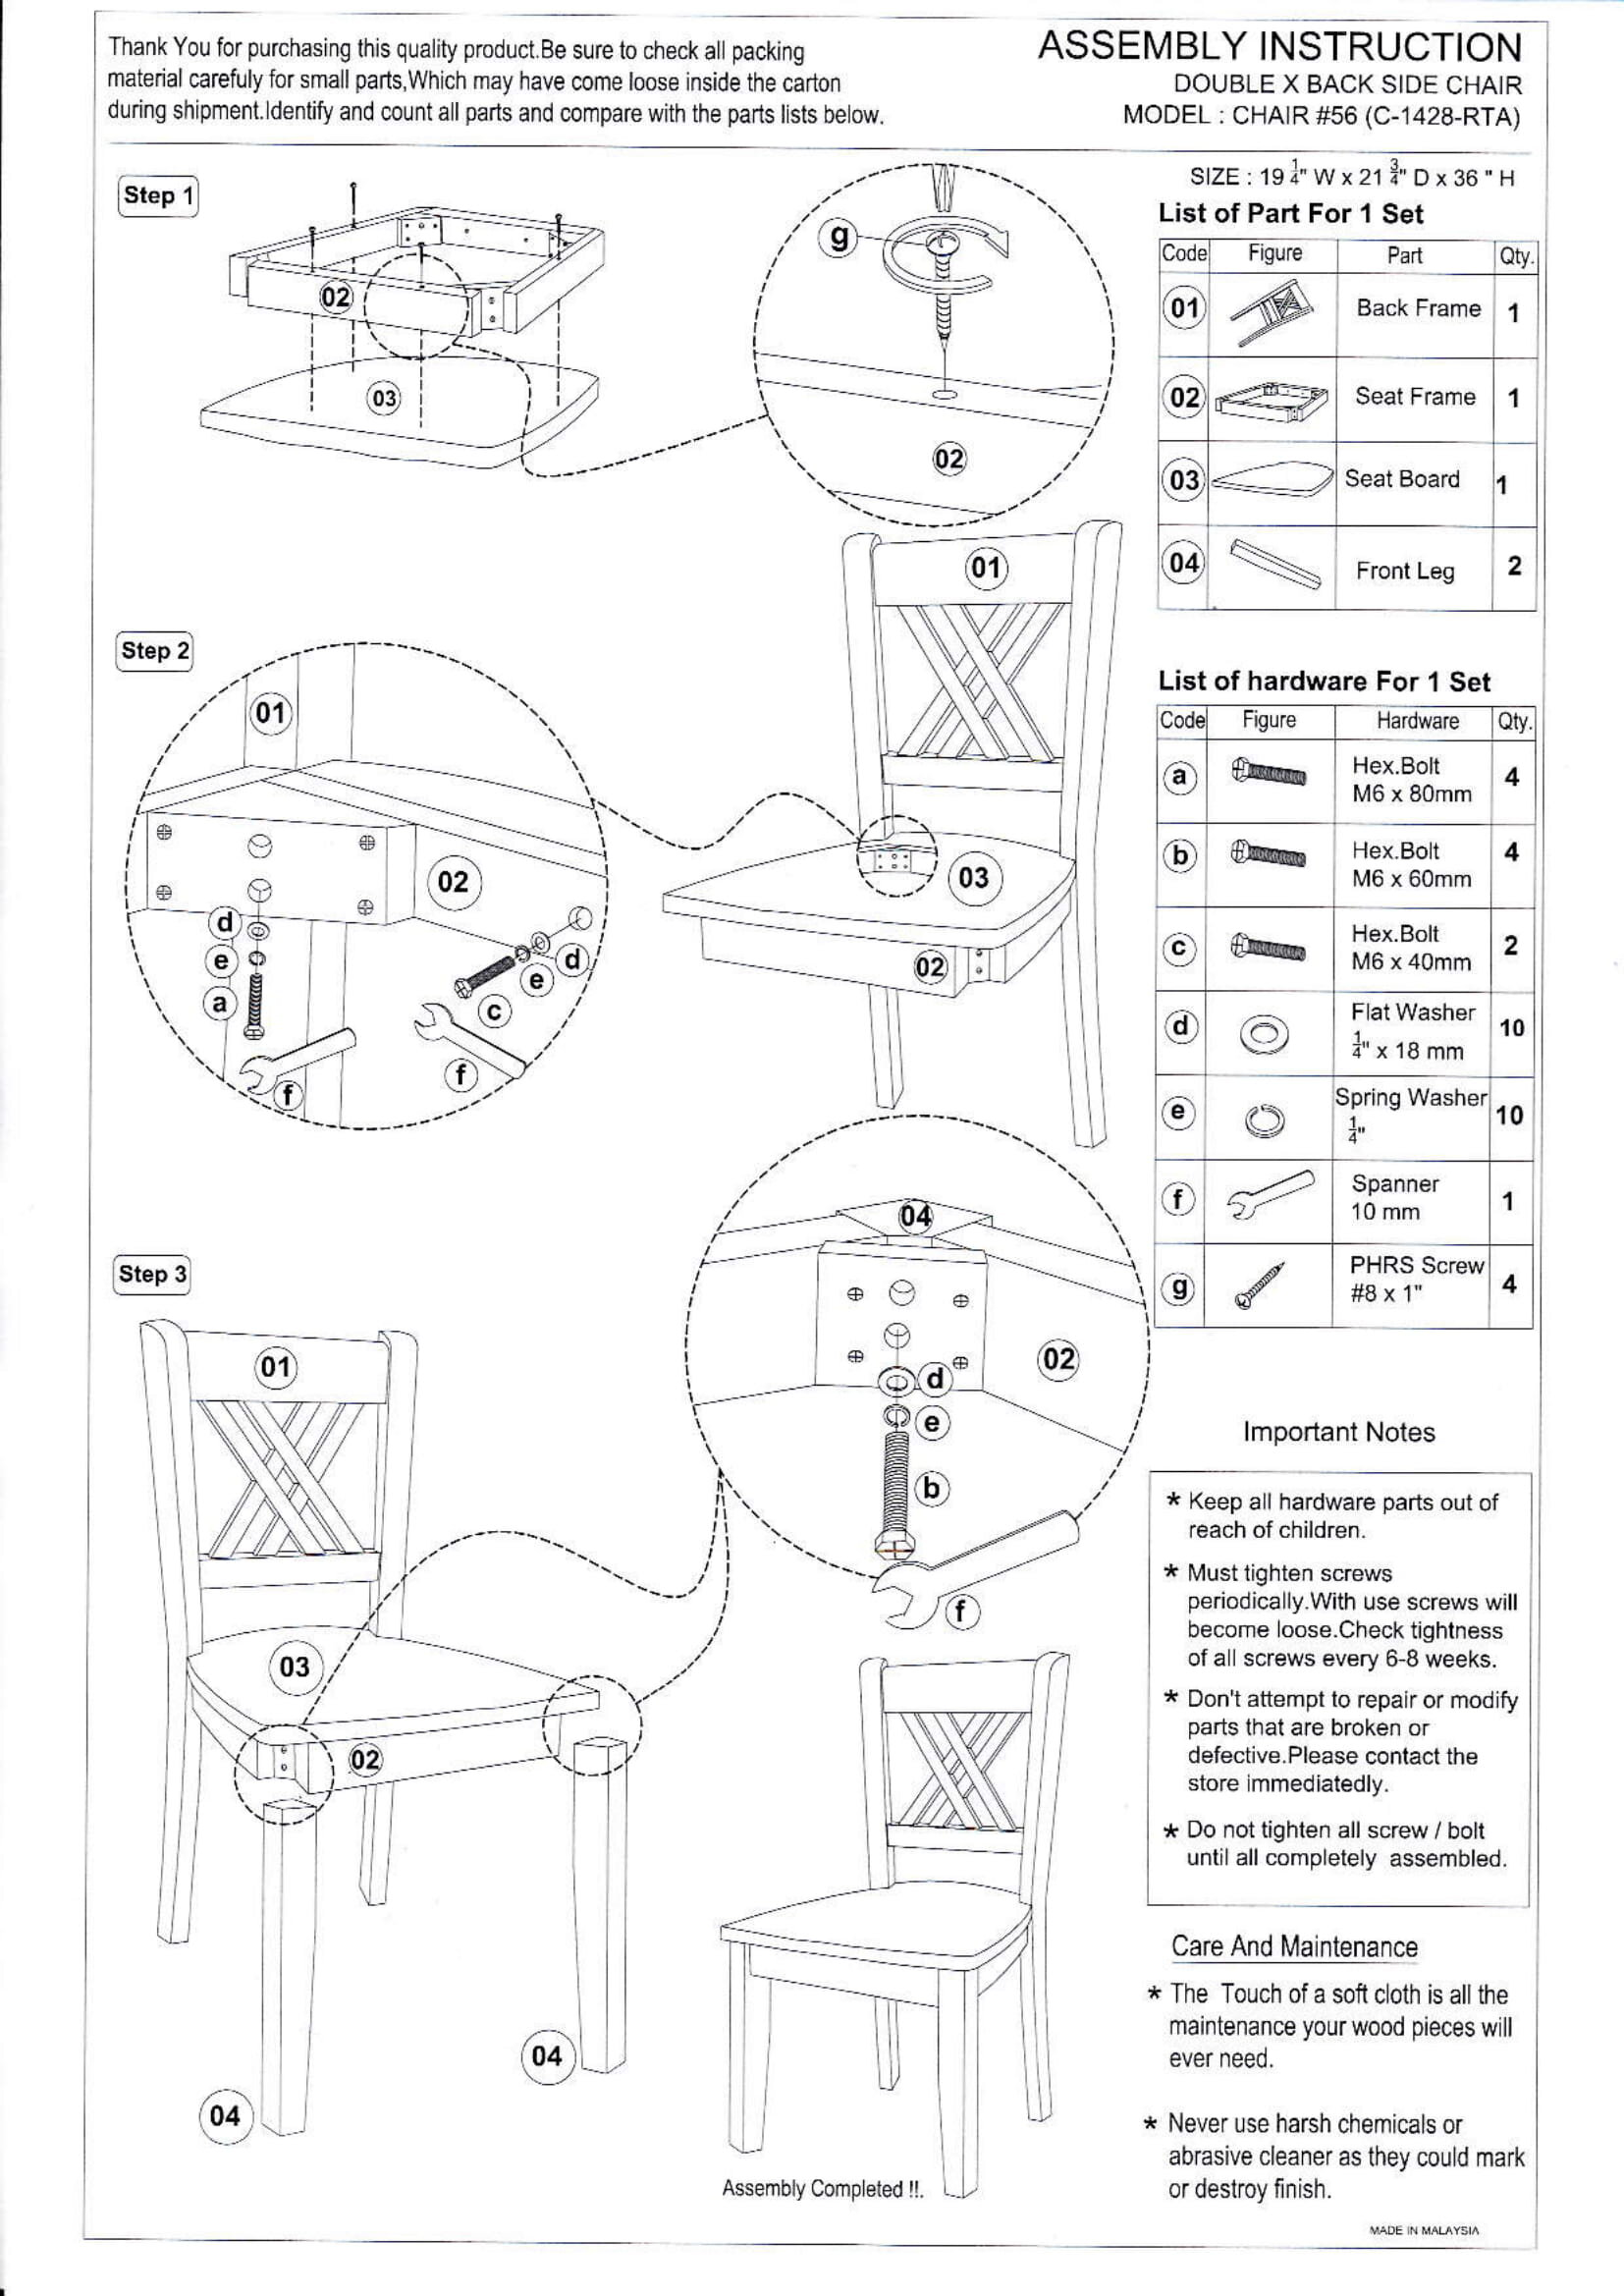 AI Chair # 56 Assembly Instruction-1.jpg